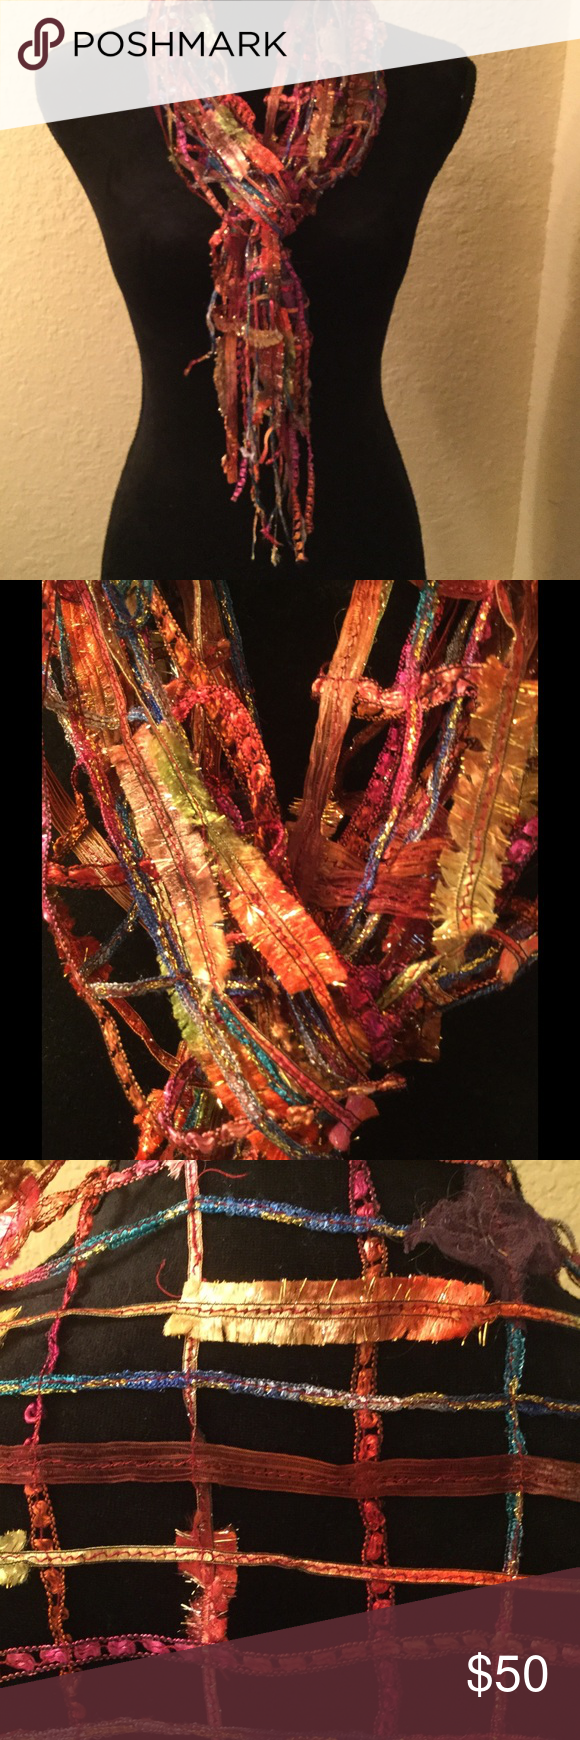 NWOT Gorgeous Art Scarf Beautiffully intricate, one of a kind jewel-toned artsy, open-weave, handmade scarf..  Picture doesn't do justice!  Perfect for jacket/dress - silk, so not for warmth, only bling! Handmade Accessories Scarves & Wraps